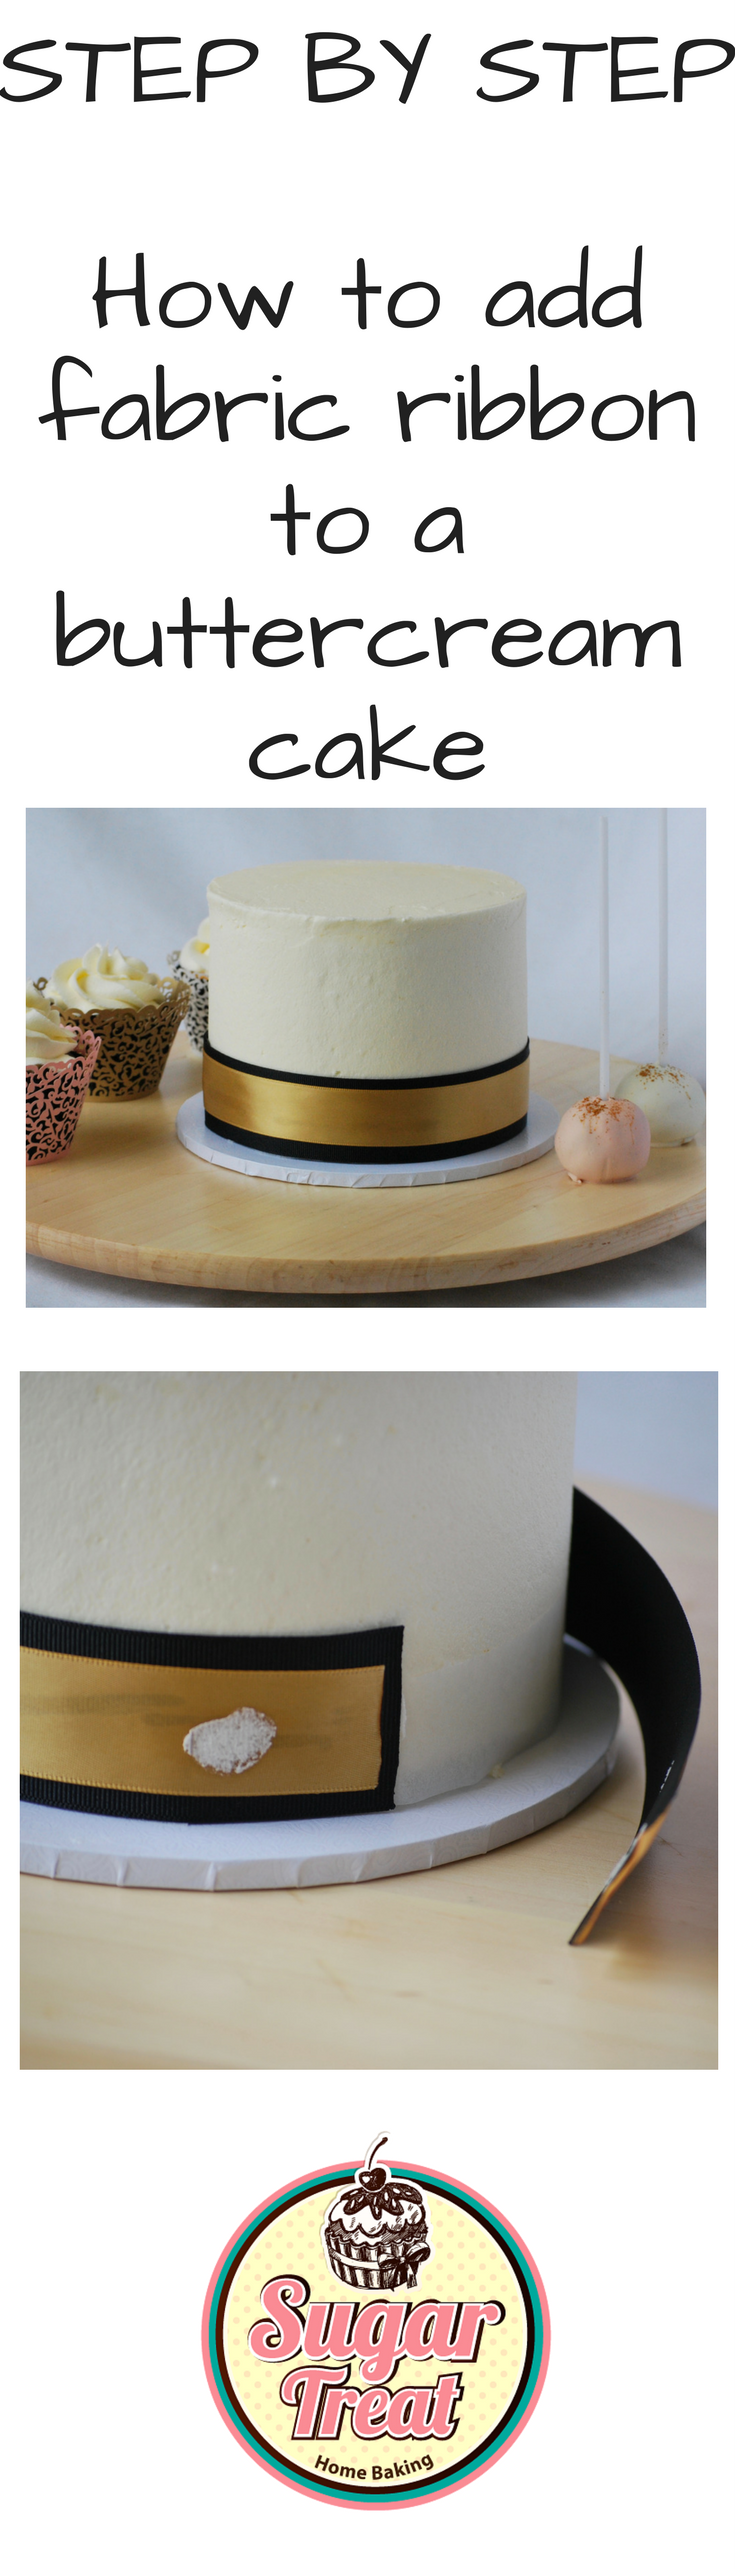 STEP BY STEPHow to add fabric ribbon to a buttercream cake.png